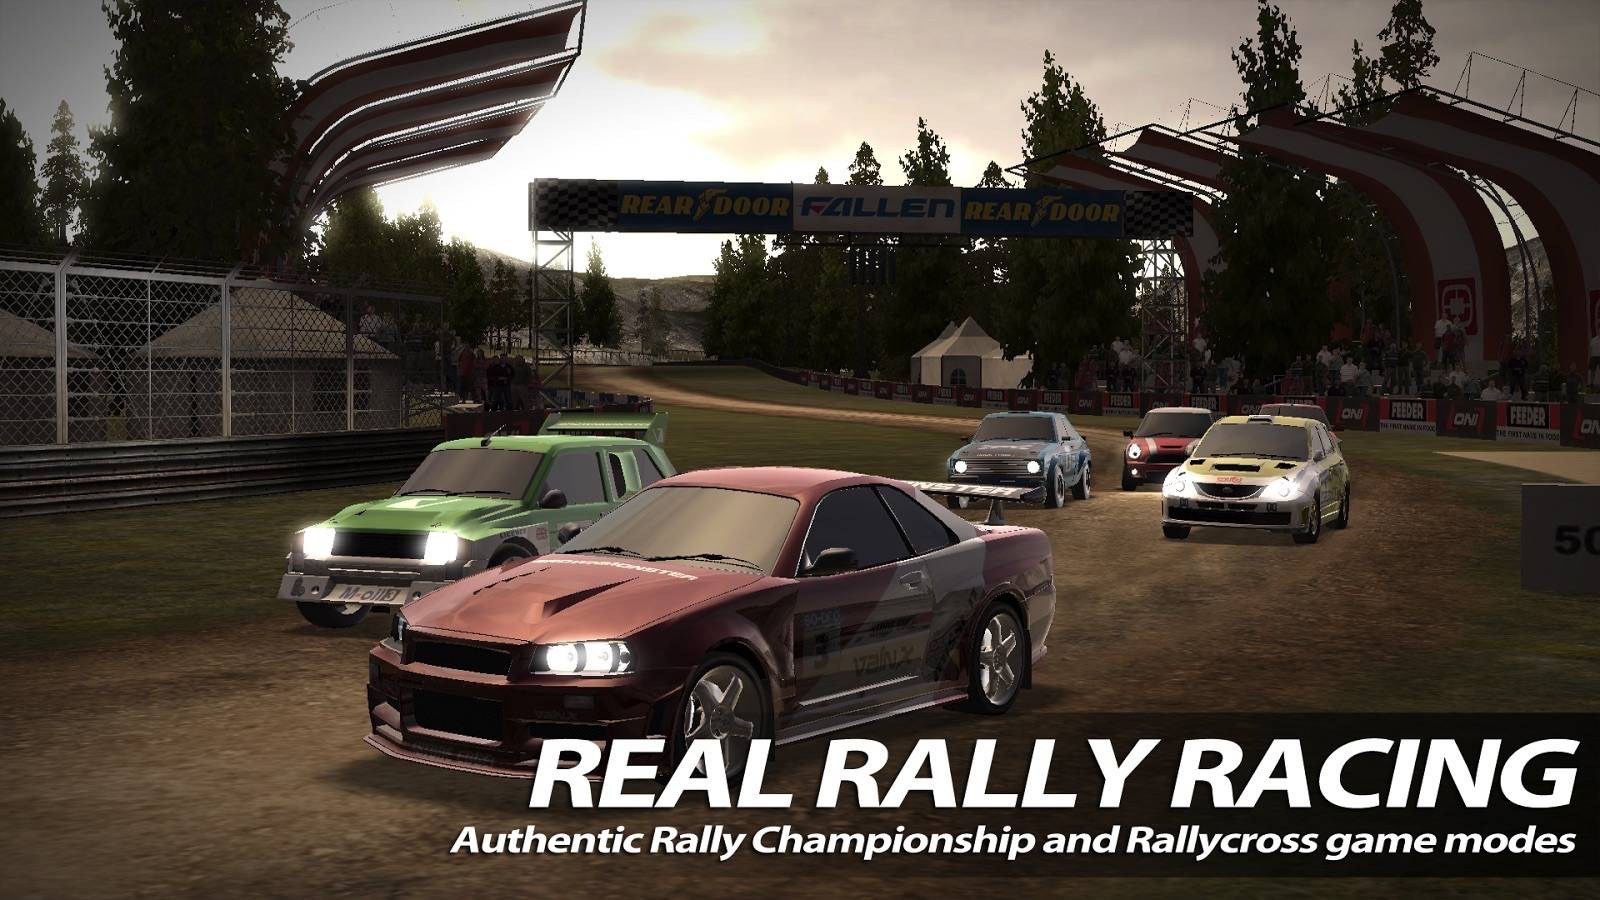 Rush Rally 2' continues an exciting rally simulation